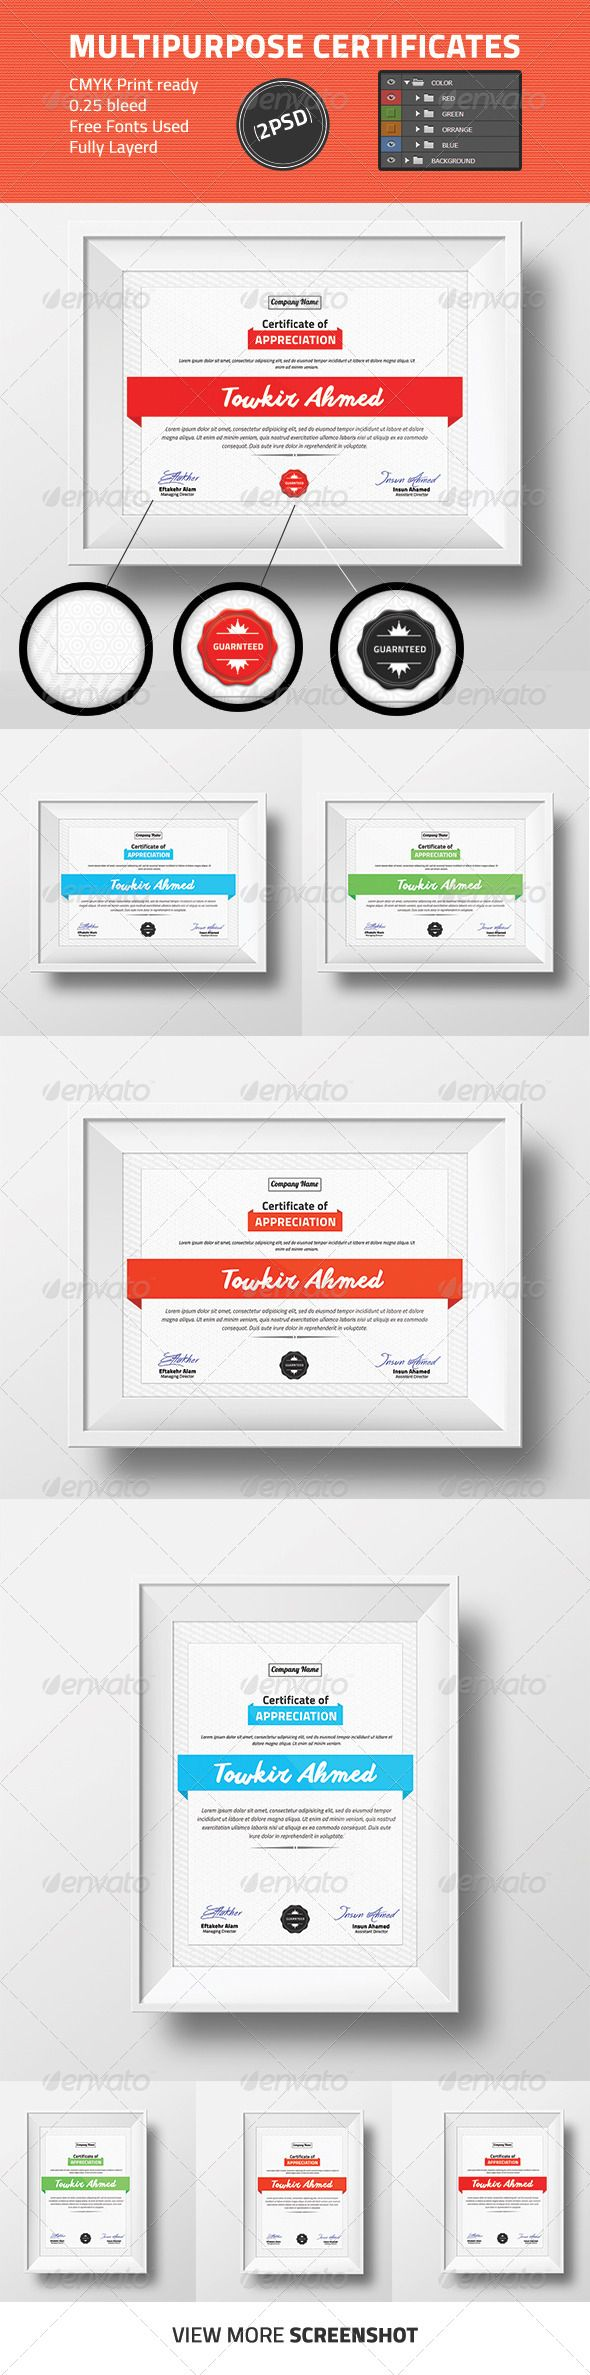 Multipurpose Certificate Design Template PSD. Download here: http://graphicriver.net/item/multipurpose-certificate-design/8713503?ref=ksioks